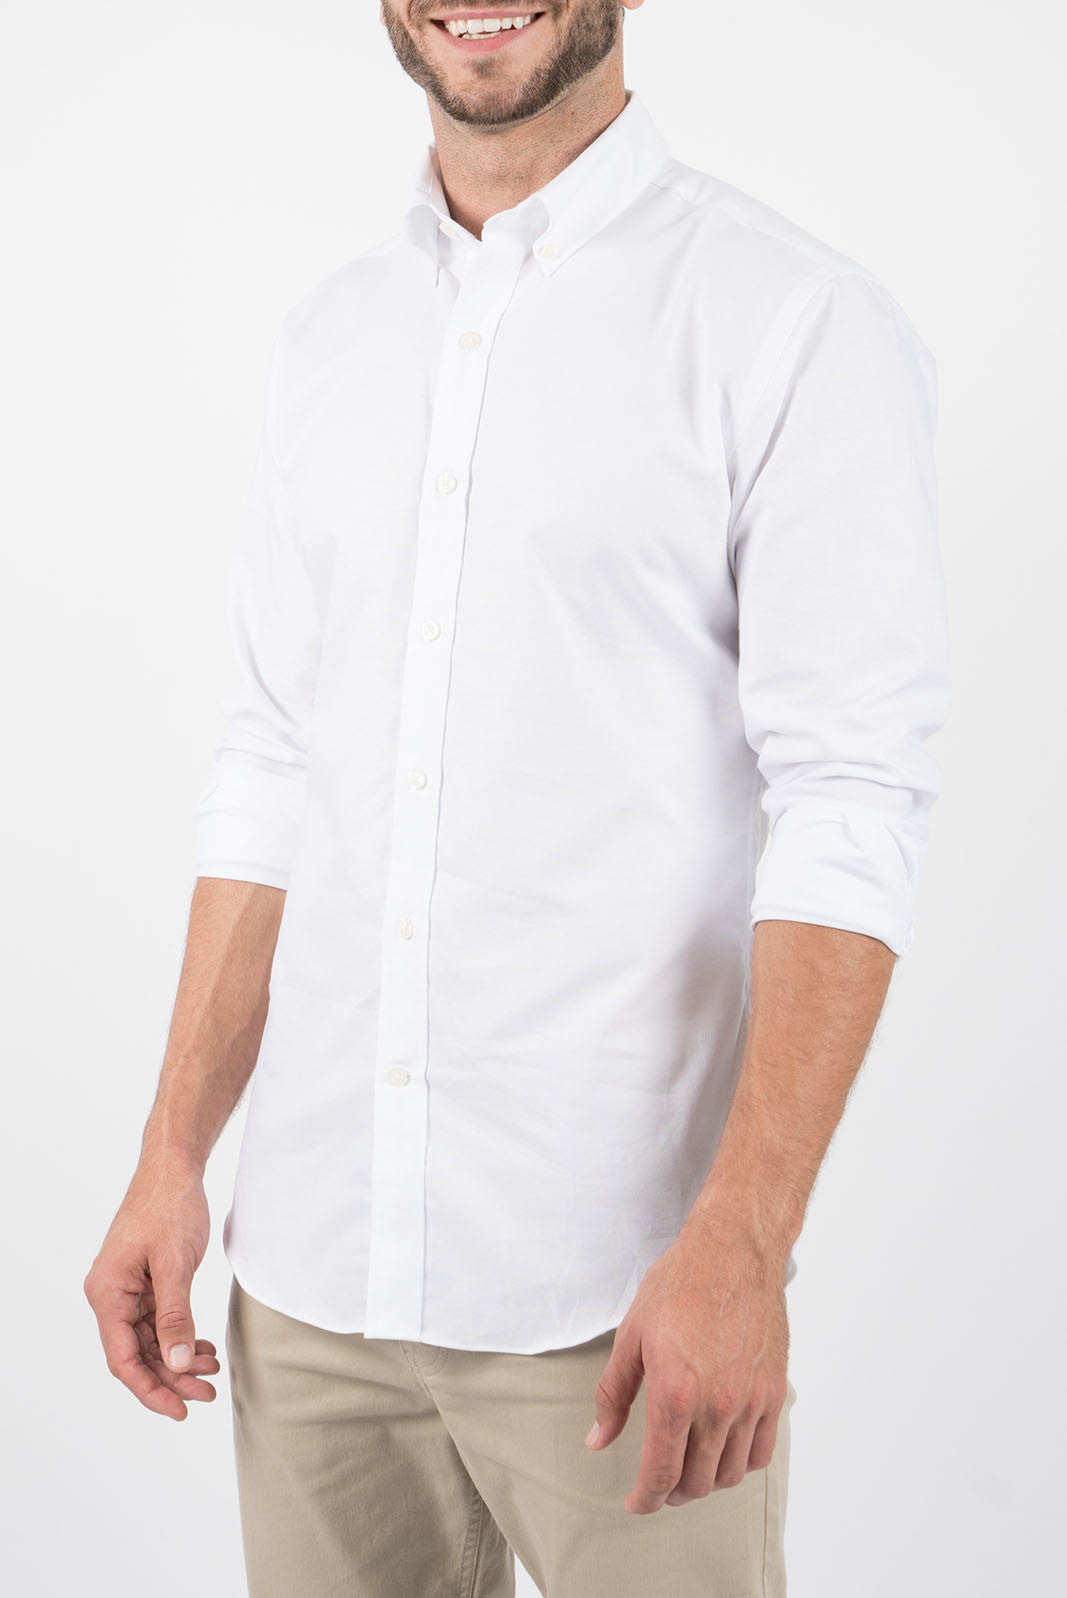 White Oxford: Semi-Spread Collar, Long Sleeve